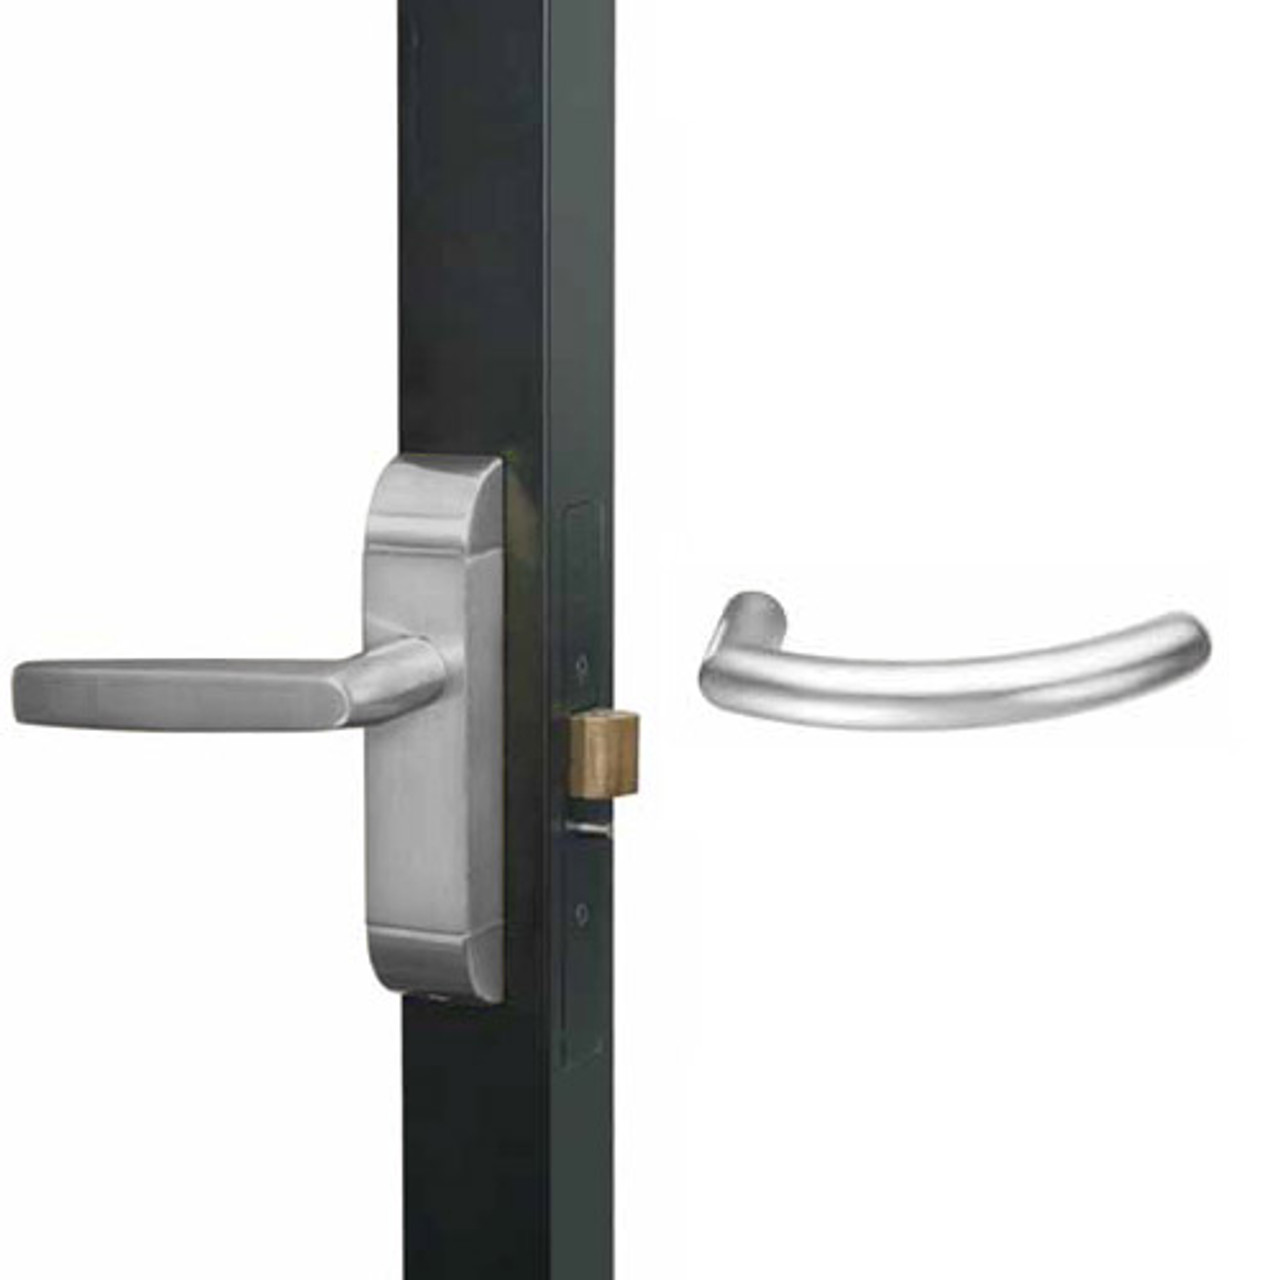 4600M-MG-641-US32 Adams Rite MG Designer Deadlatch handle in Bright Stainless Finish